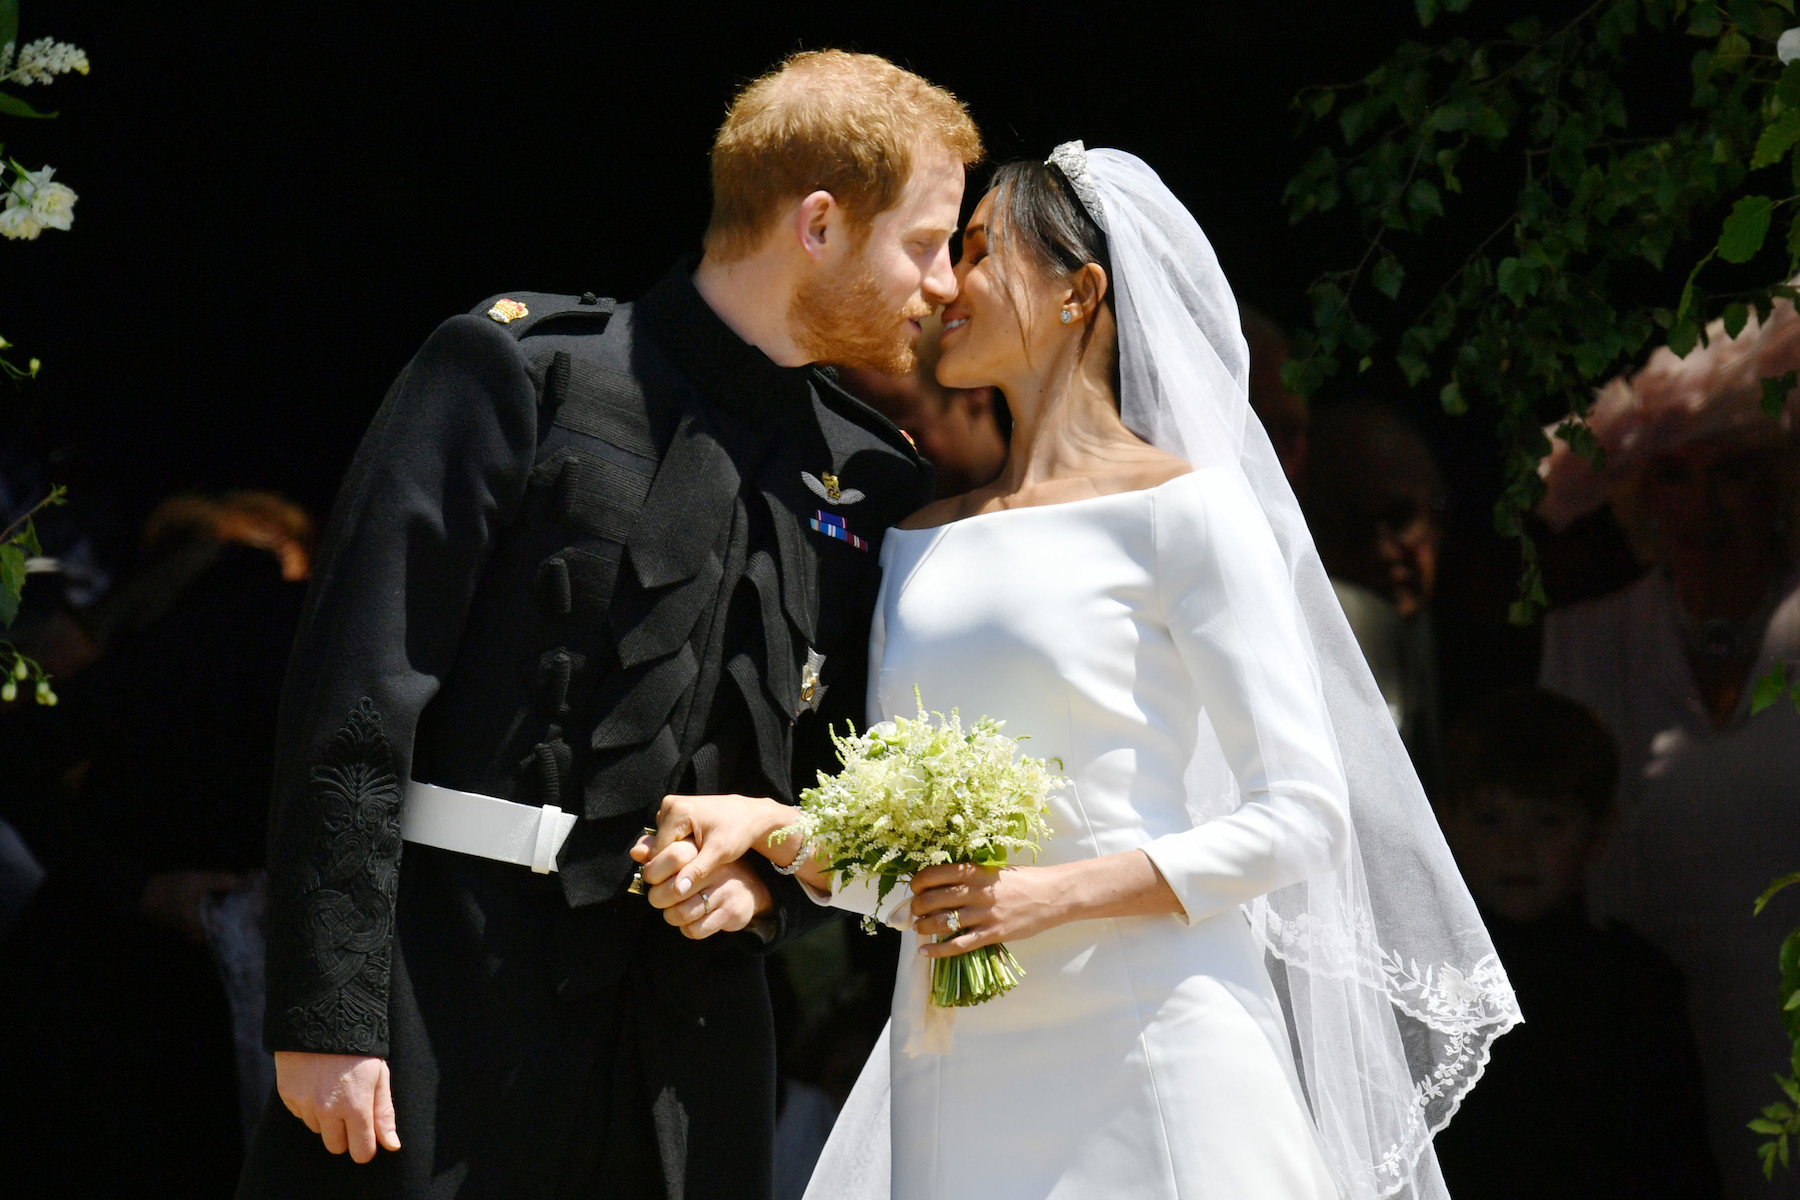 "<div class=""meta image-caption""><div class=""origin-logo origin-image wpvi""><span>wpvi</span></div><span class=""caption-text"">Britain's Prince Harry, Duke of Sussex kisses his wife Meghan, Duchess of Sussex as they leave from the West Door of St George's Chapel. (Ben Birchall/AFP/Getty Images)</span></div>"